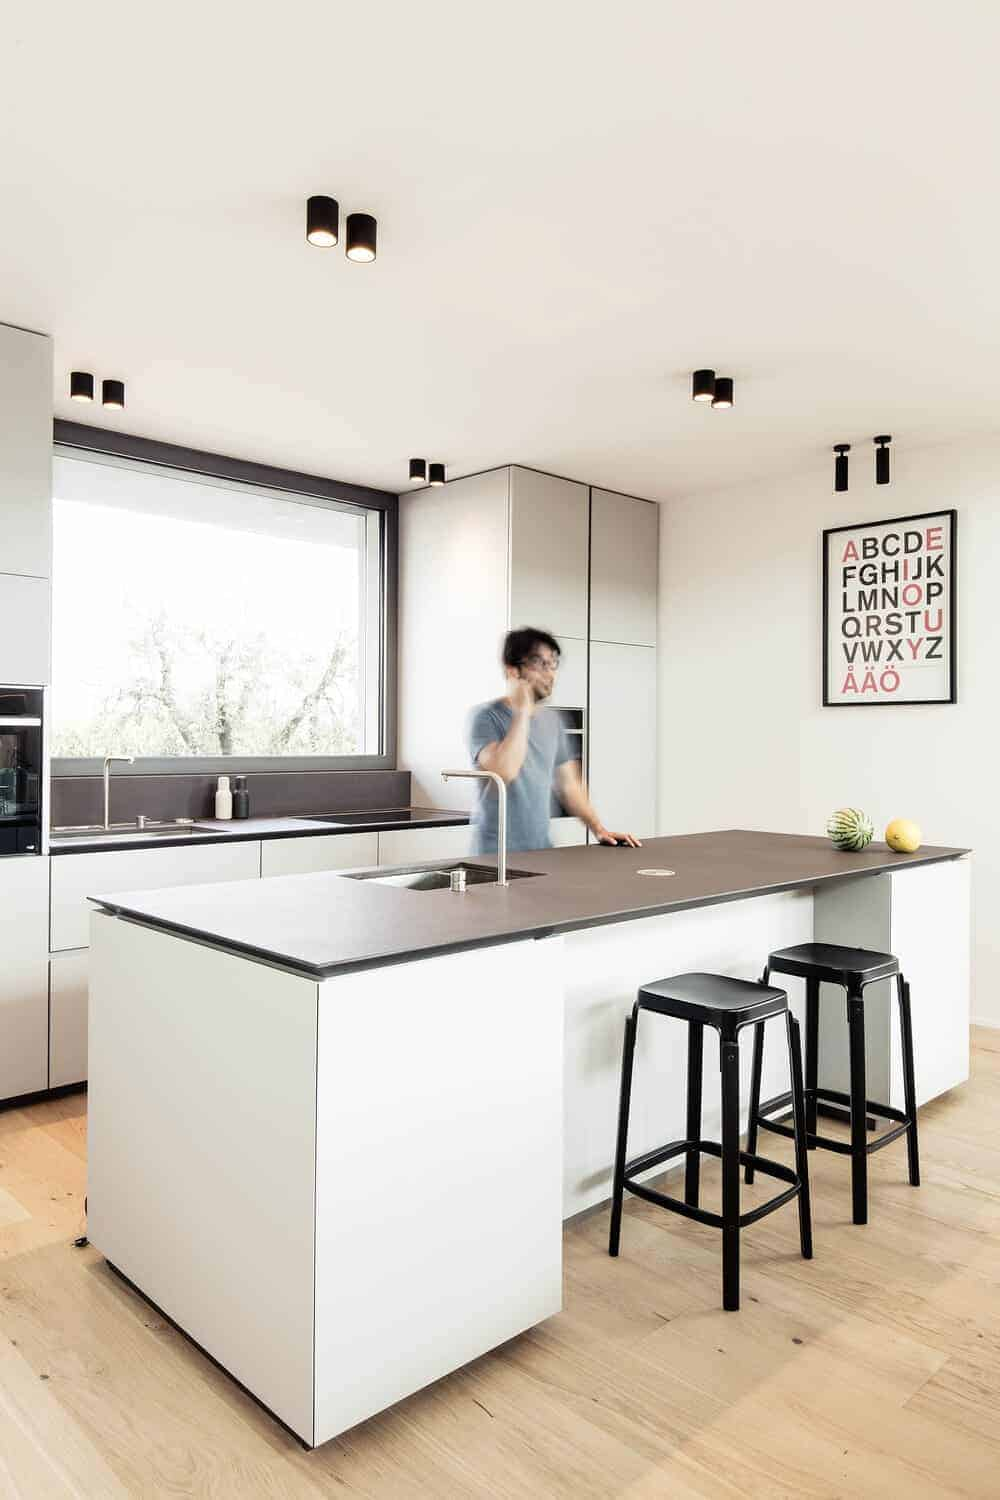 This is a minimalist kitchen with bright white cabinetry that matches with the walls and the kitchen island contrasted by the countertops and modern lighting.